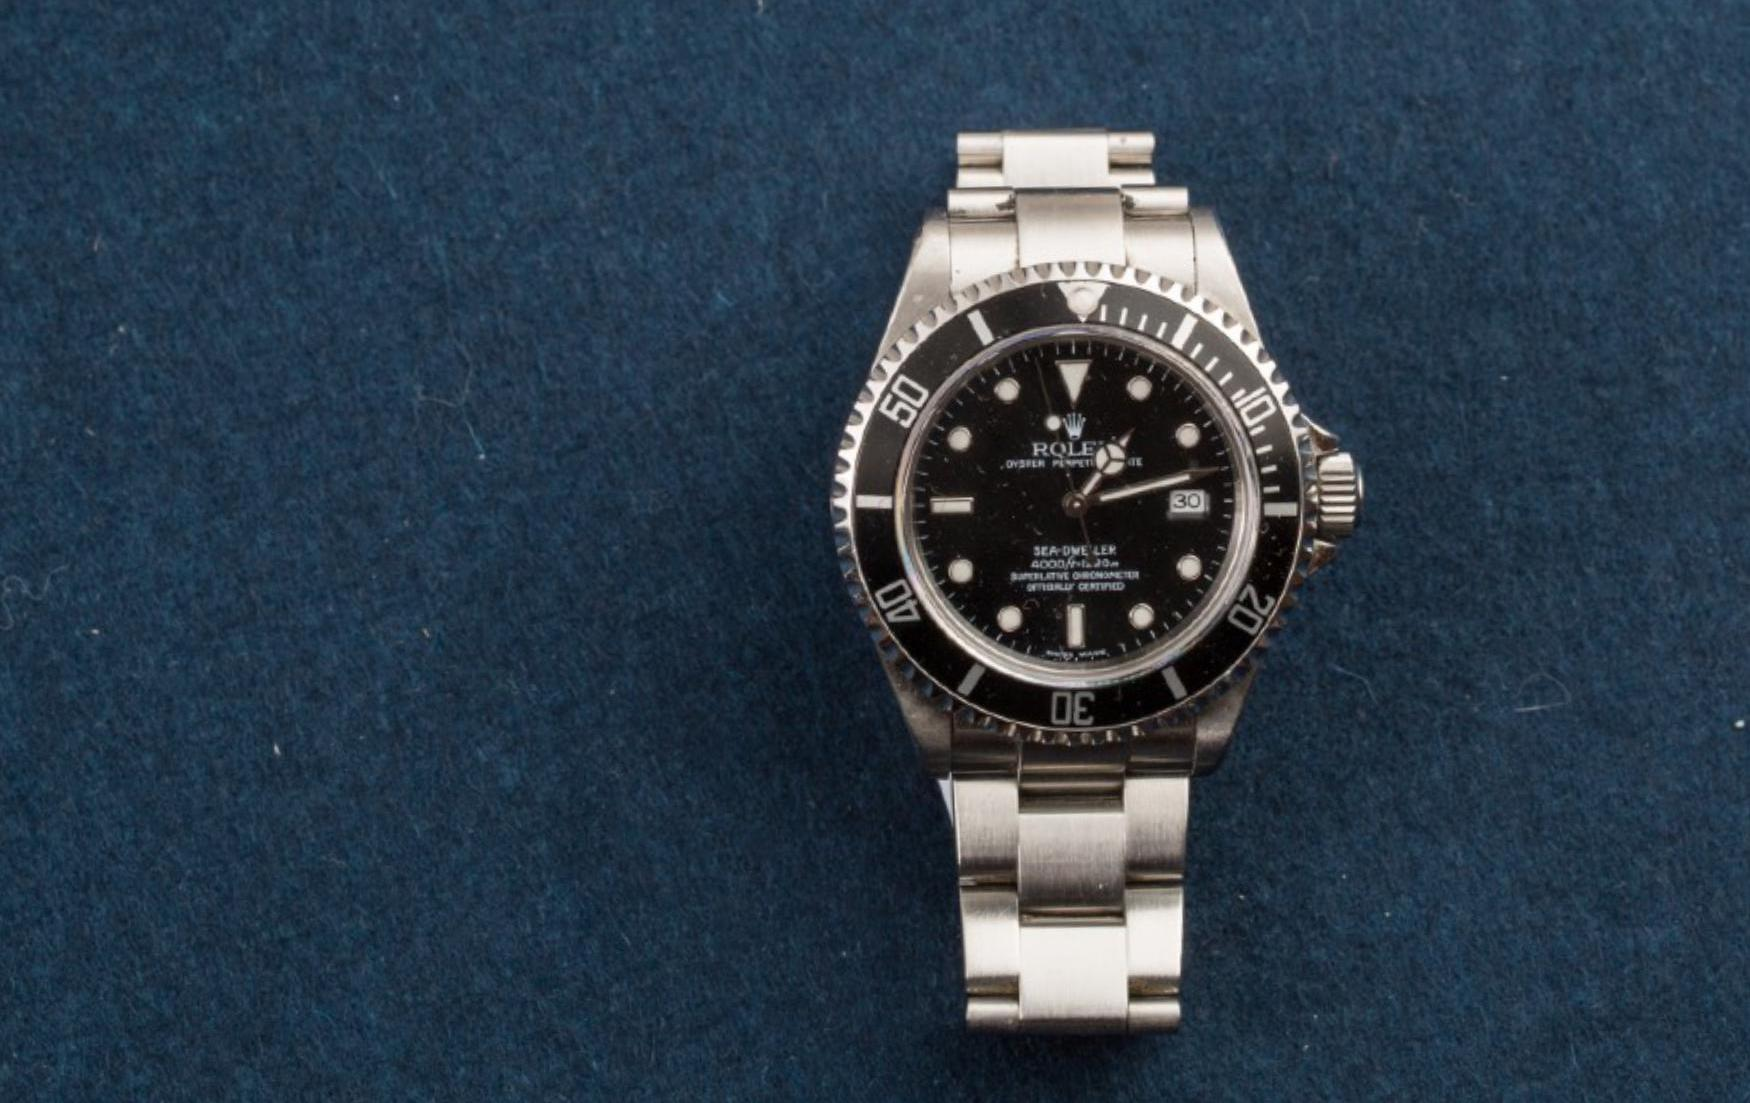 Lot 9 - ROLEX, Oyster Perpetual Date Sea Dweller stainless steel watch, Circa 2005